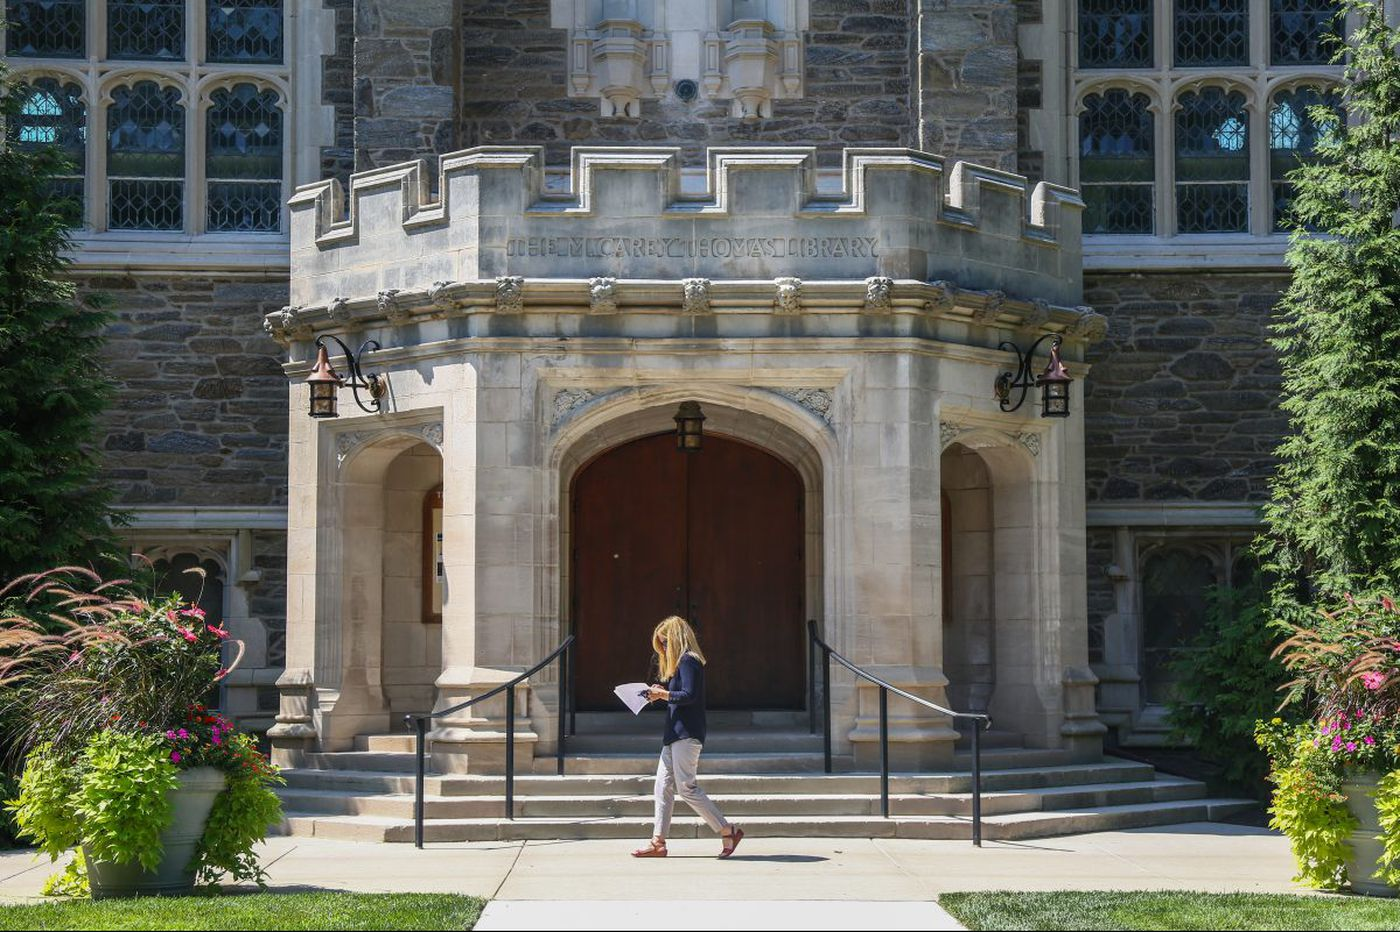 At local colleges, criminal records still hold applicants back